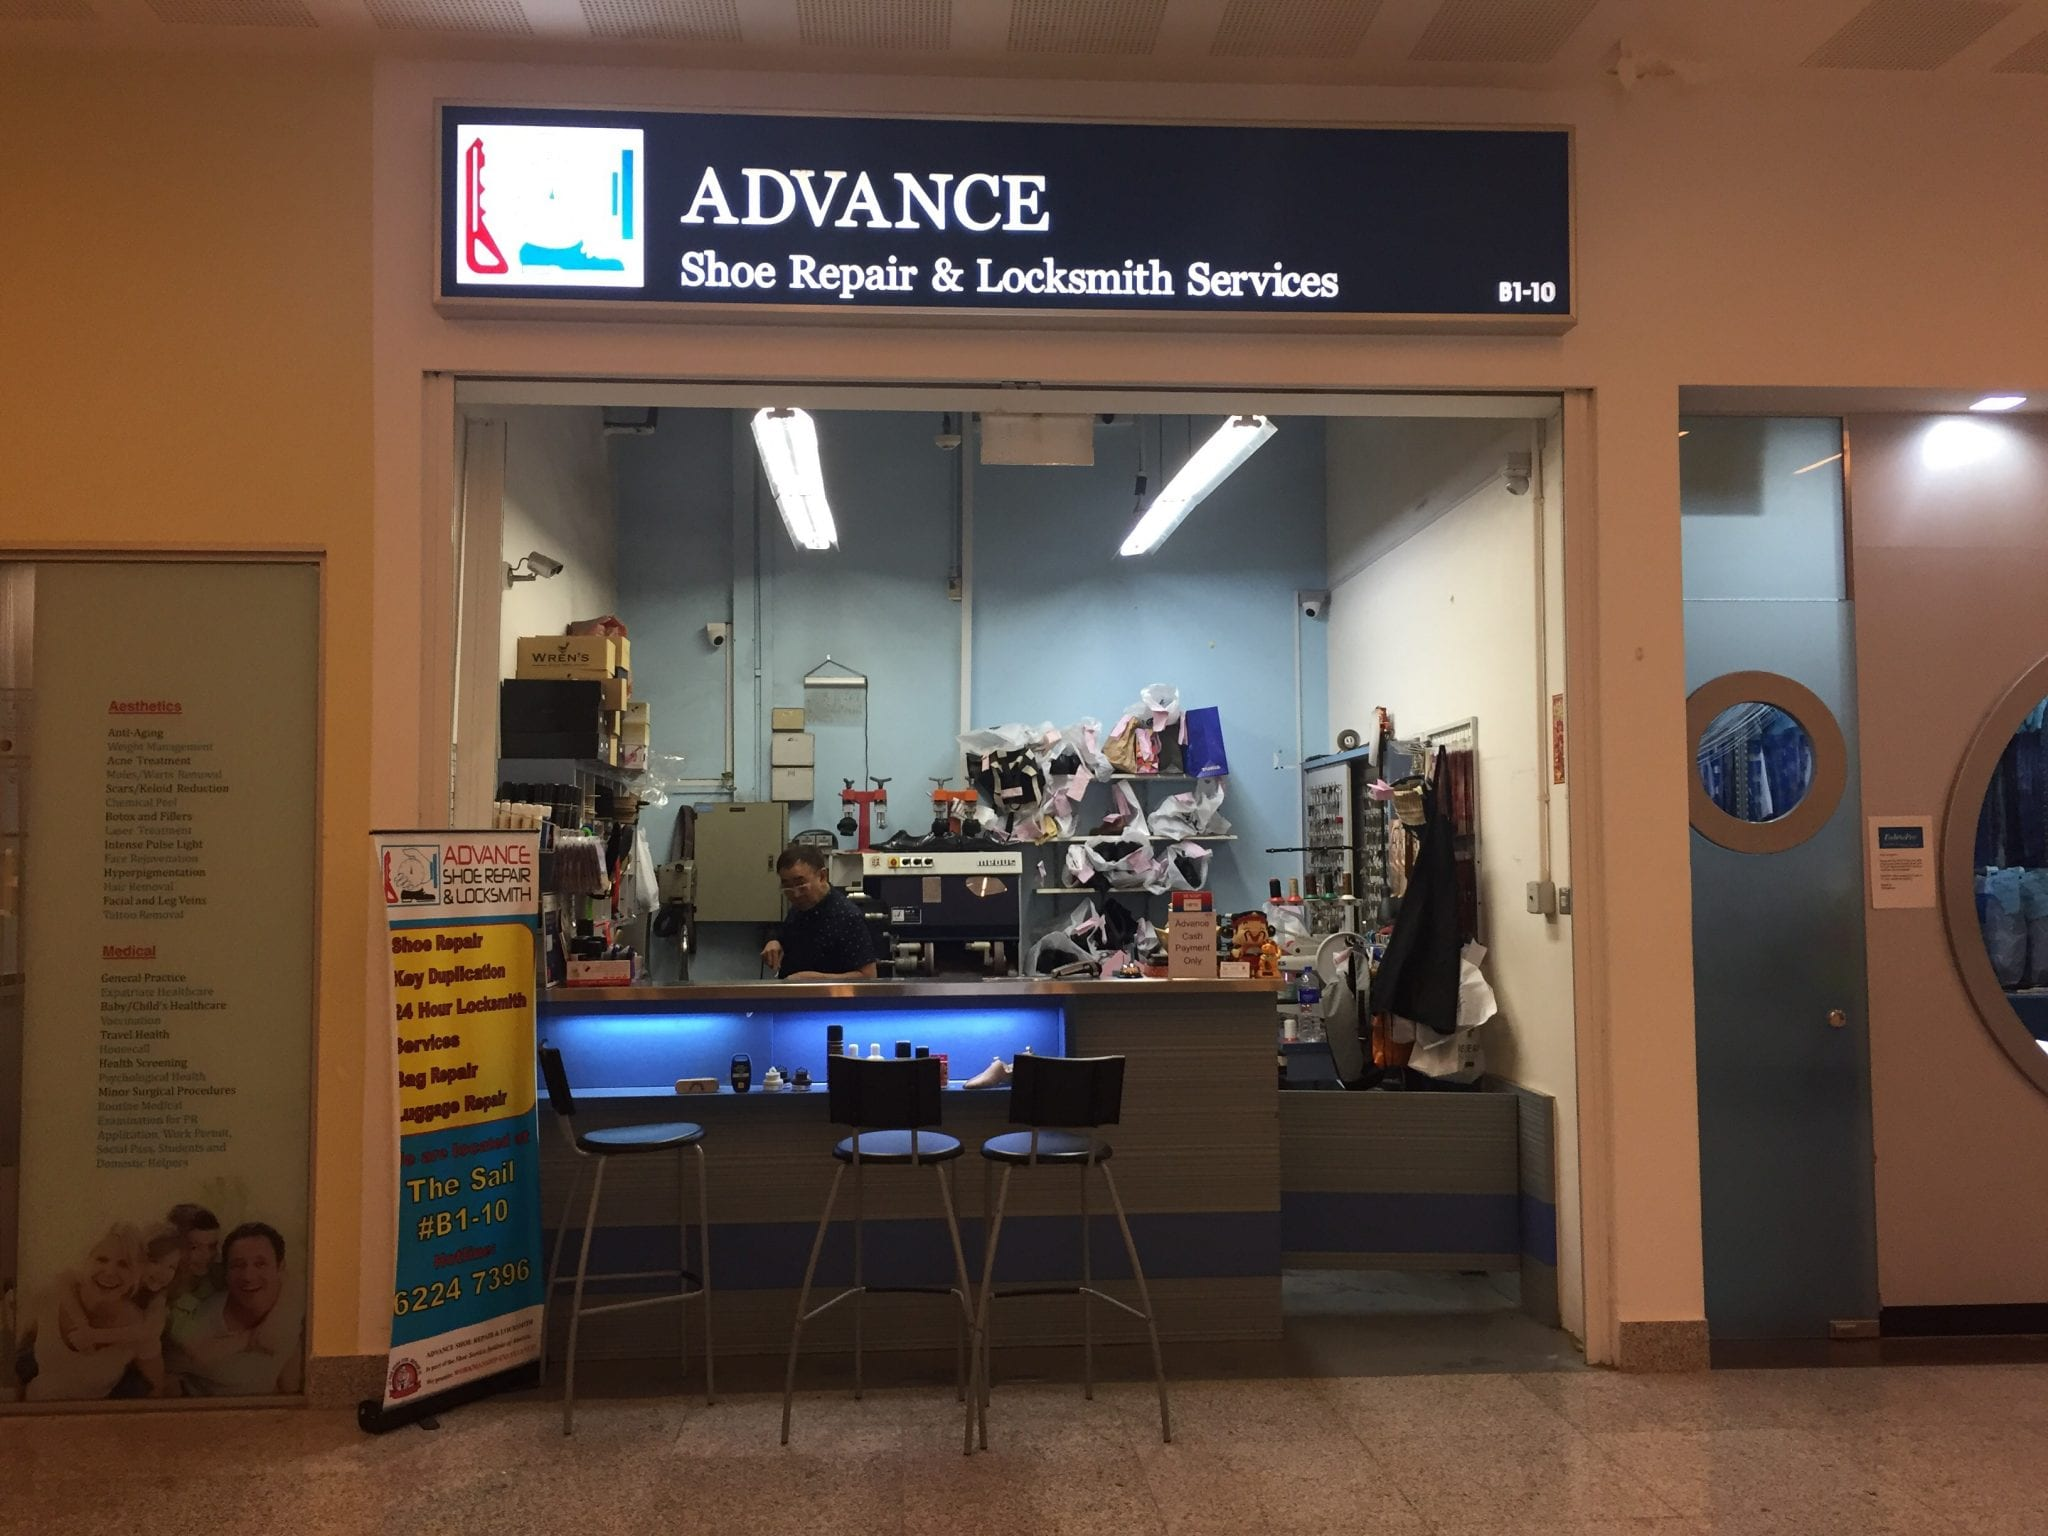 Advance Shoe Repair & Locksmith